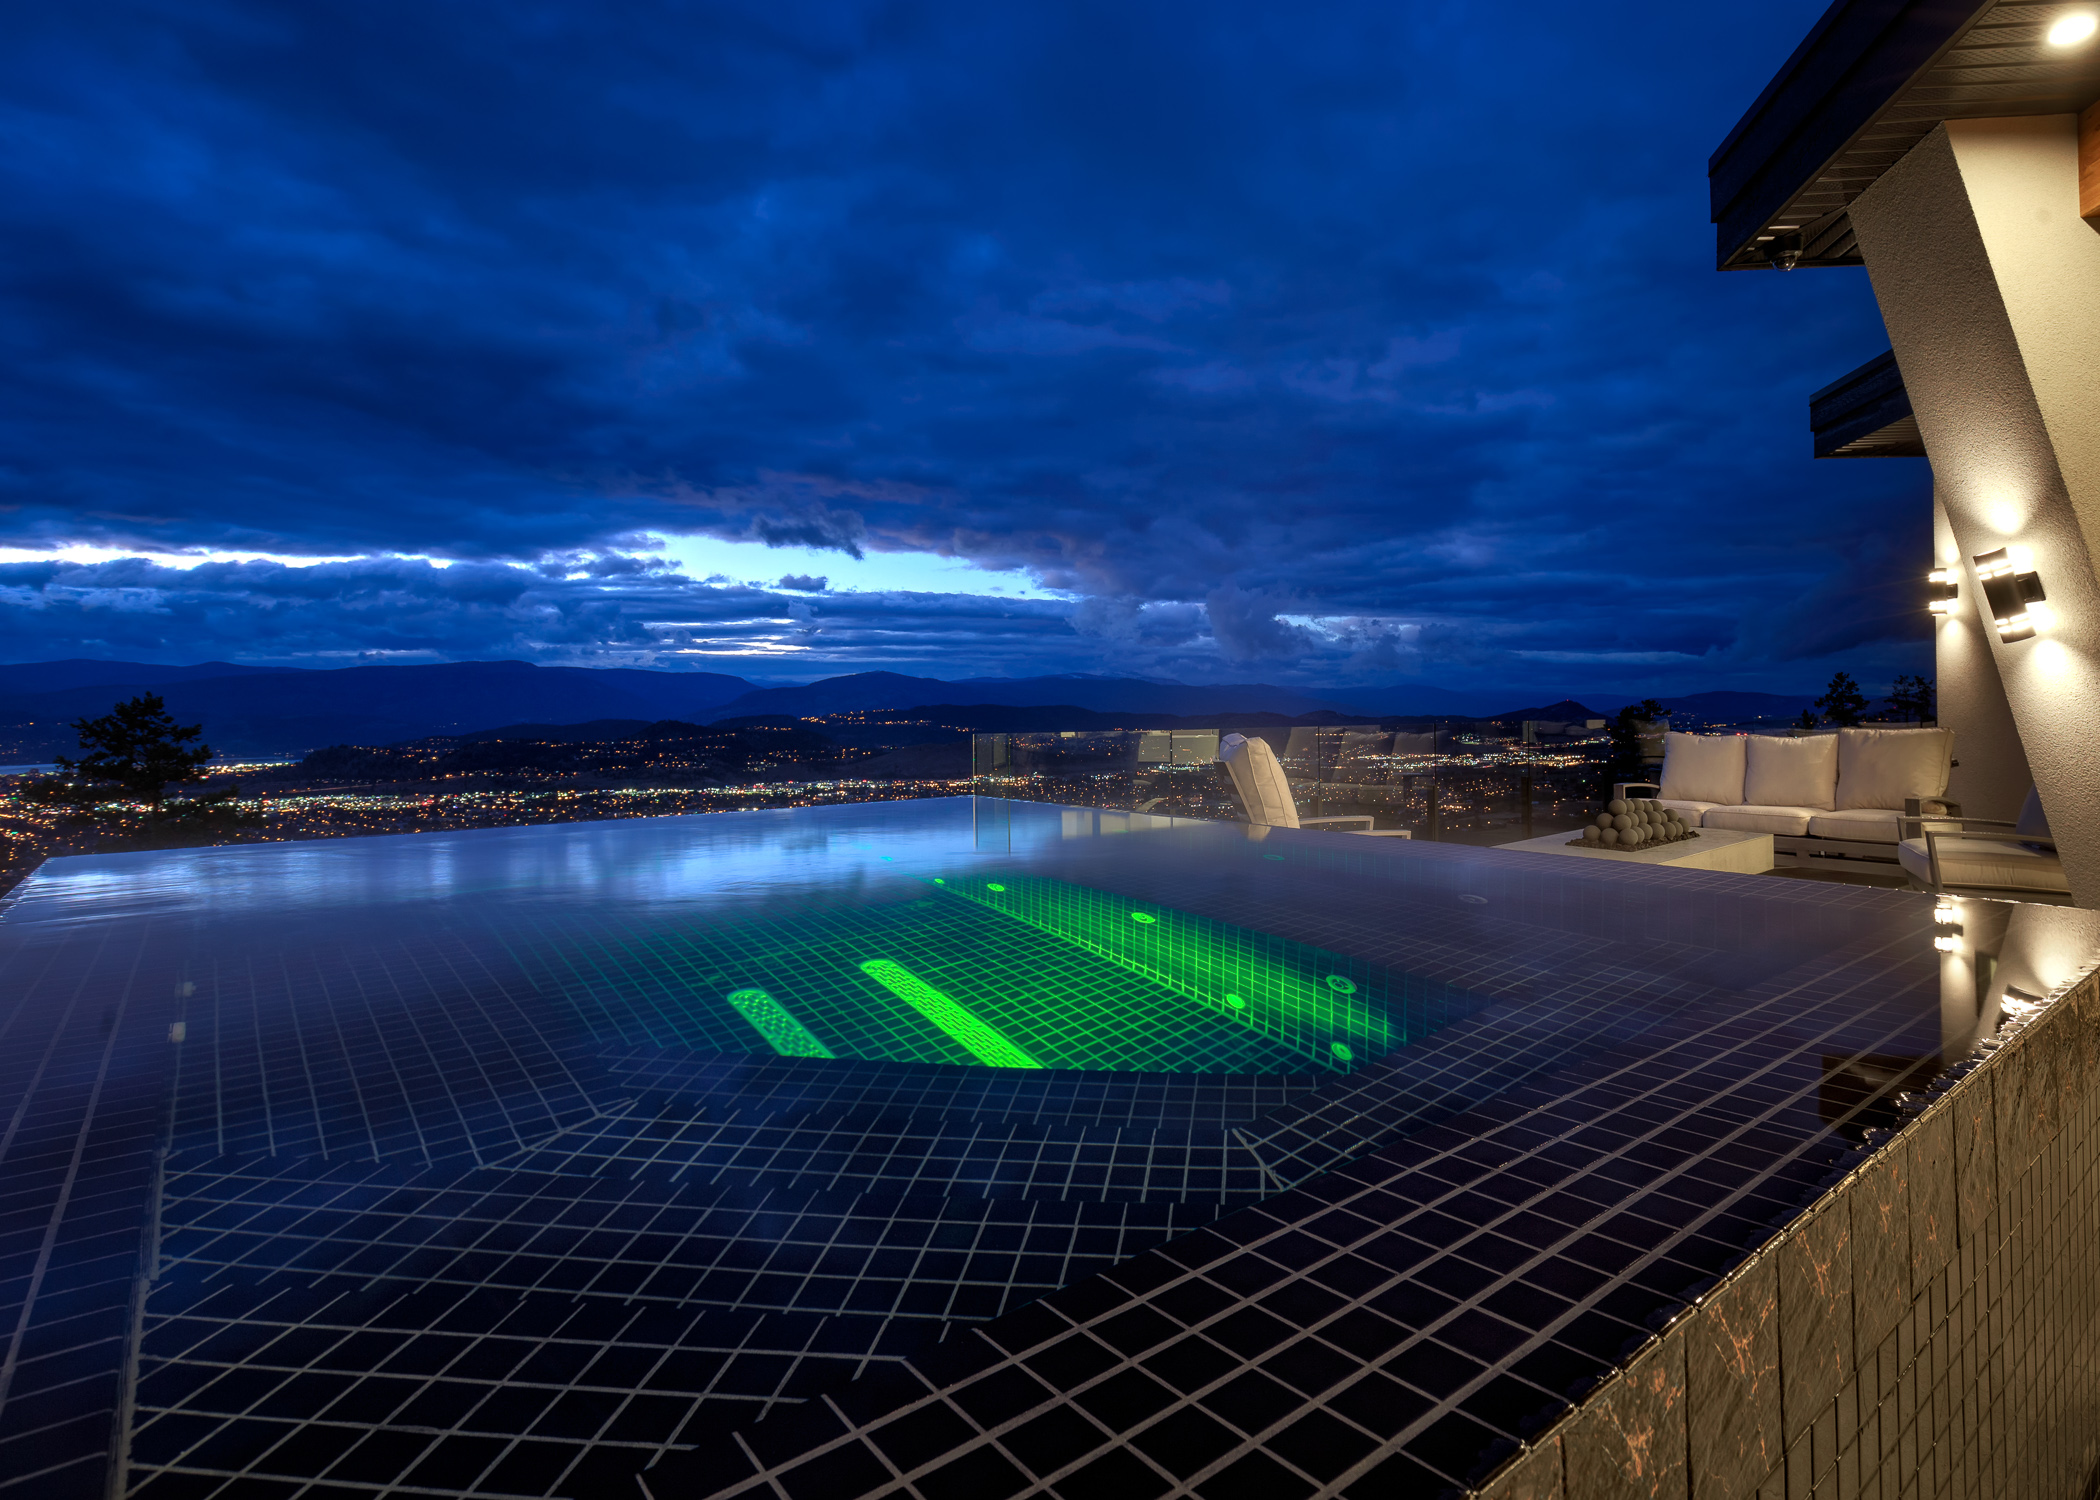 dramatic image of infinity pool lit up at night